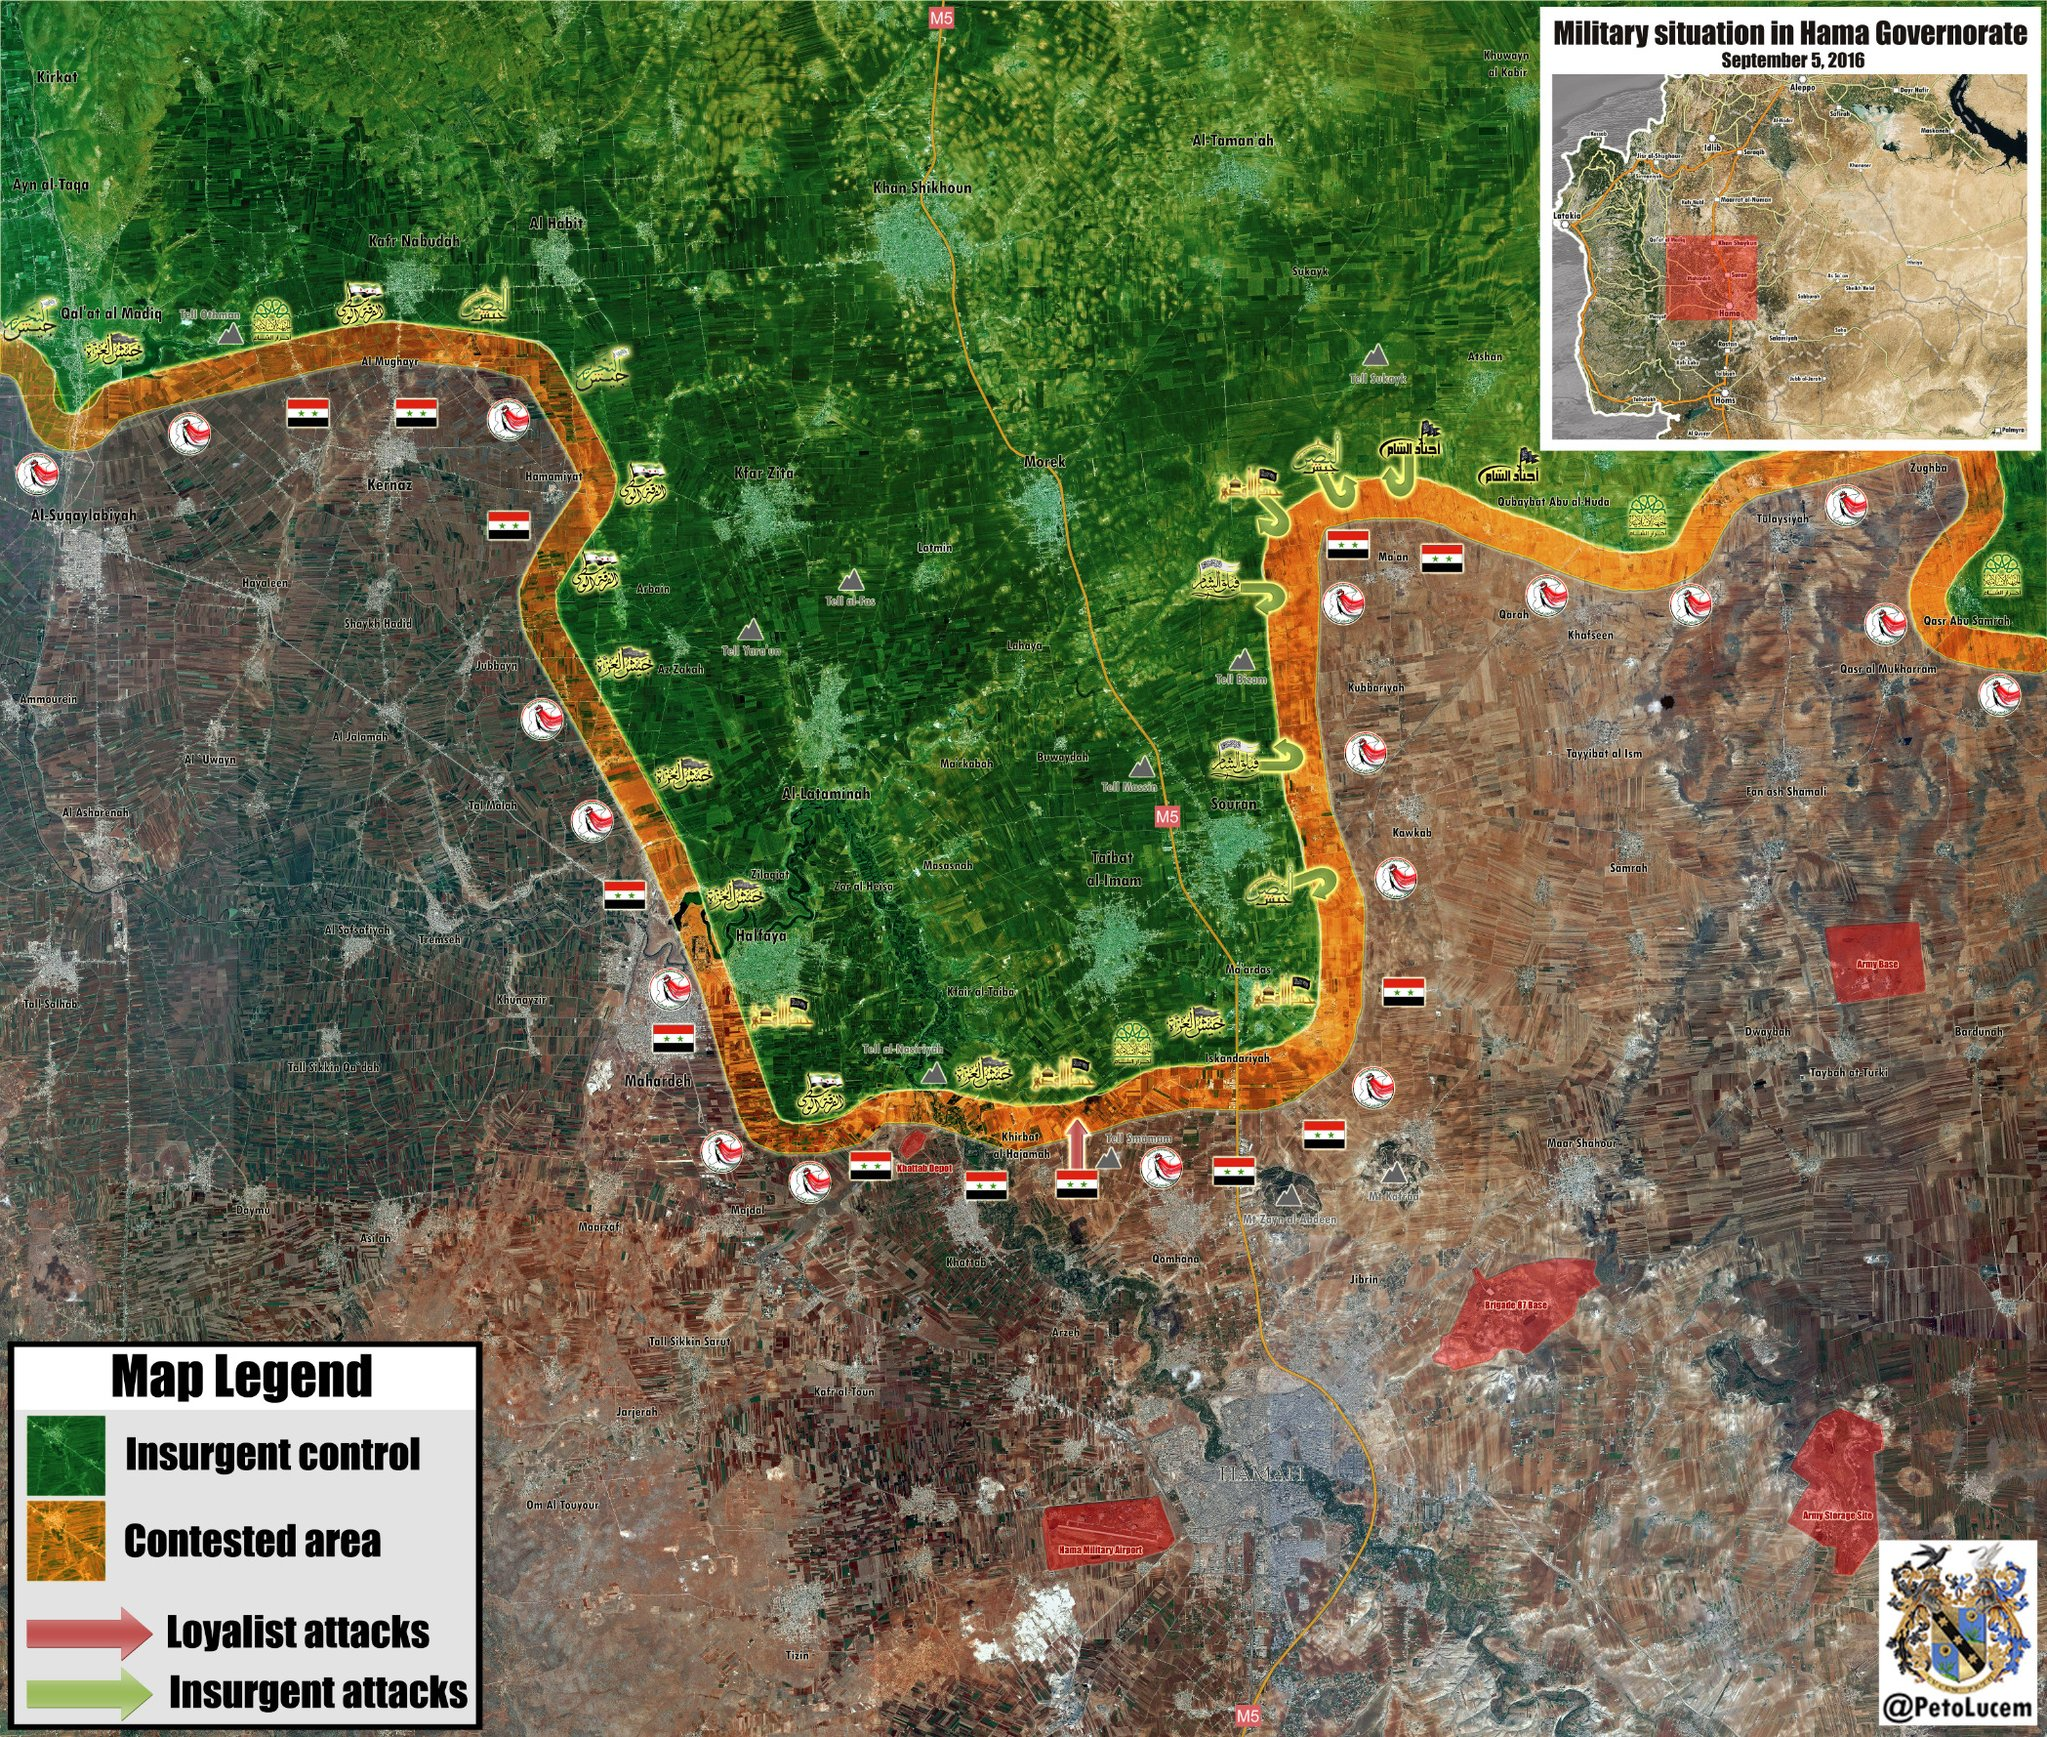 Overview of Military Situation in Syria on September 6